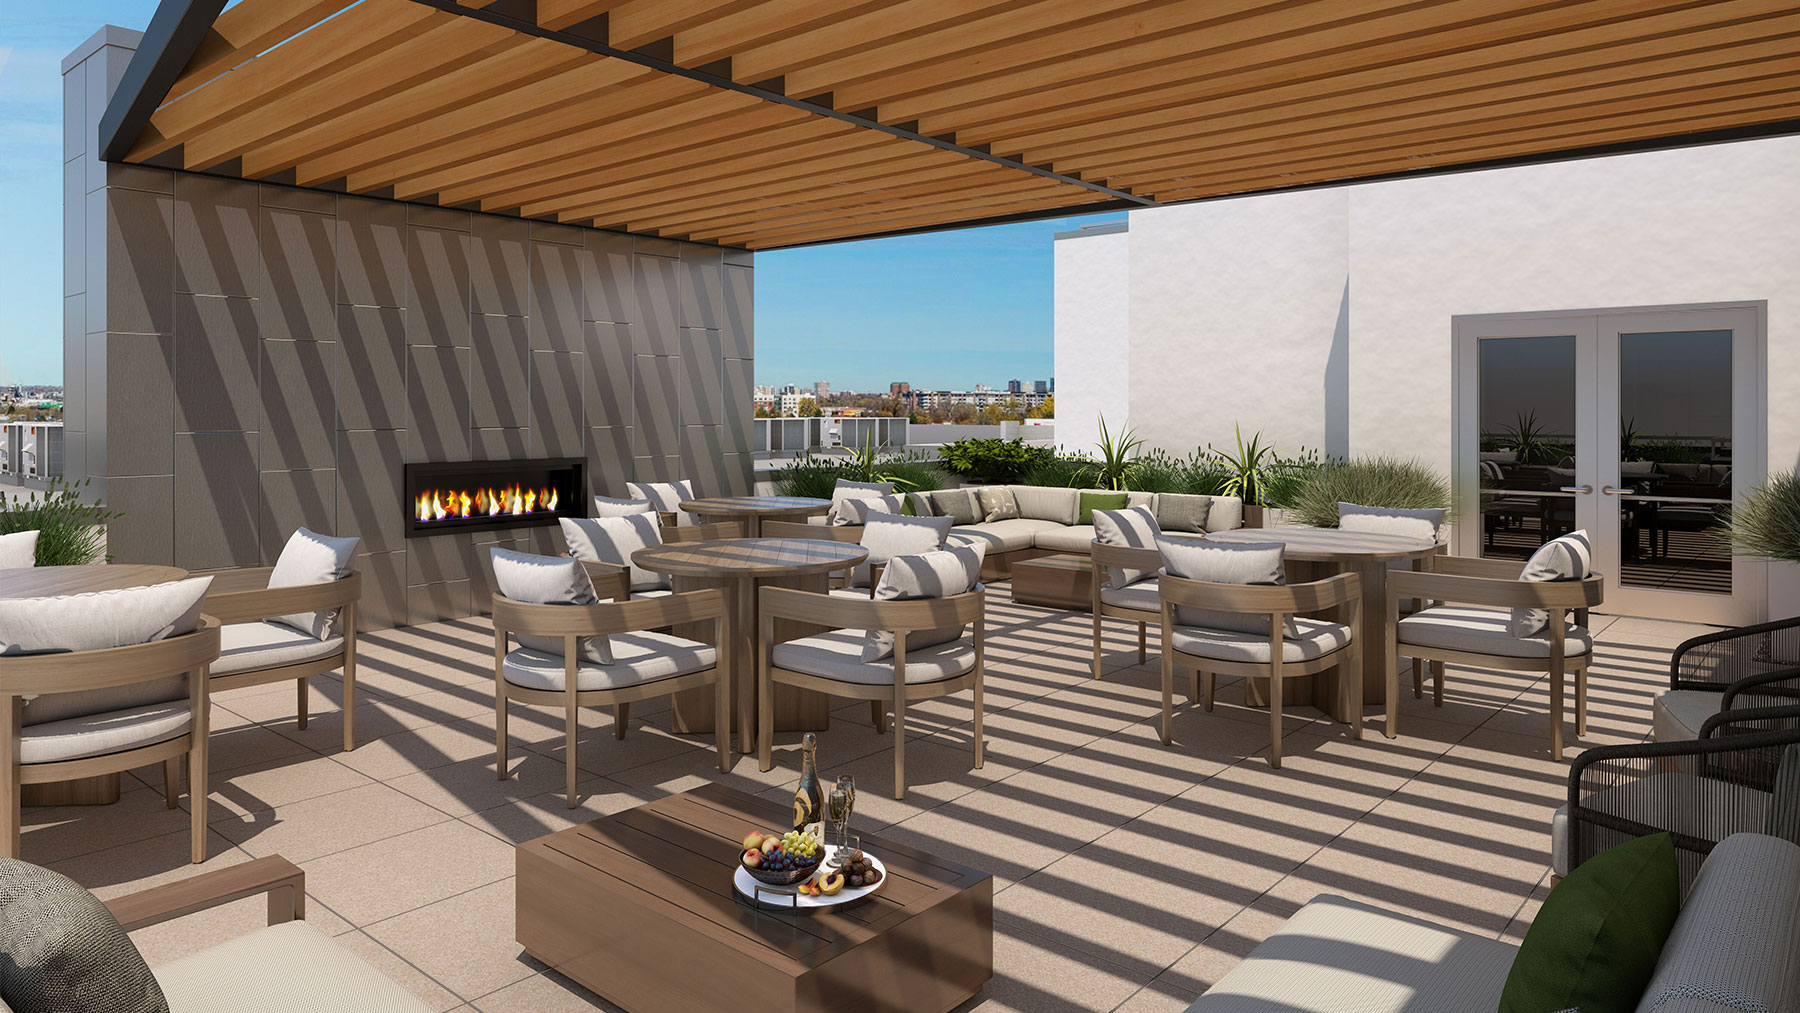 A rendering of the rooftop patio.